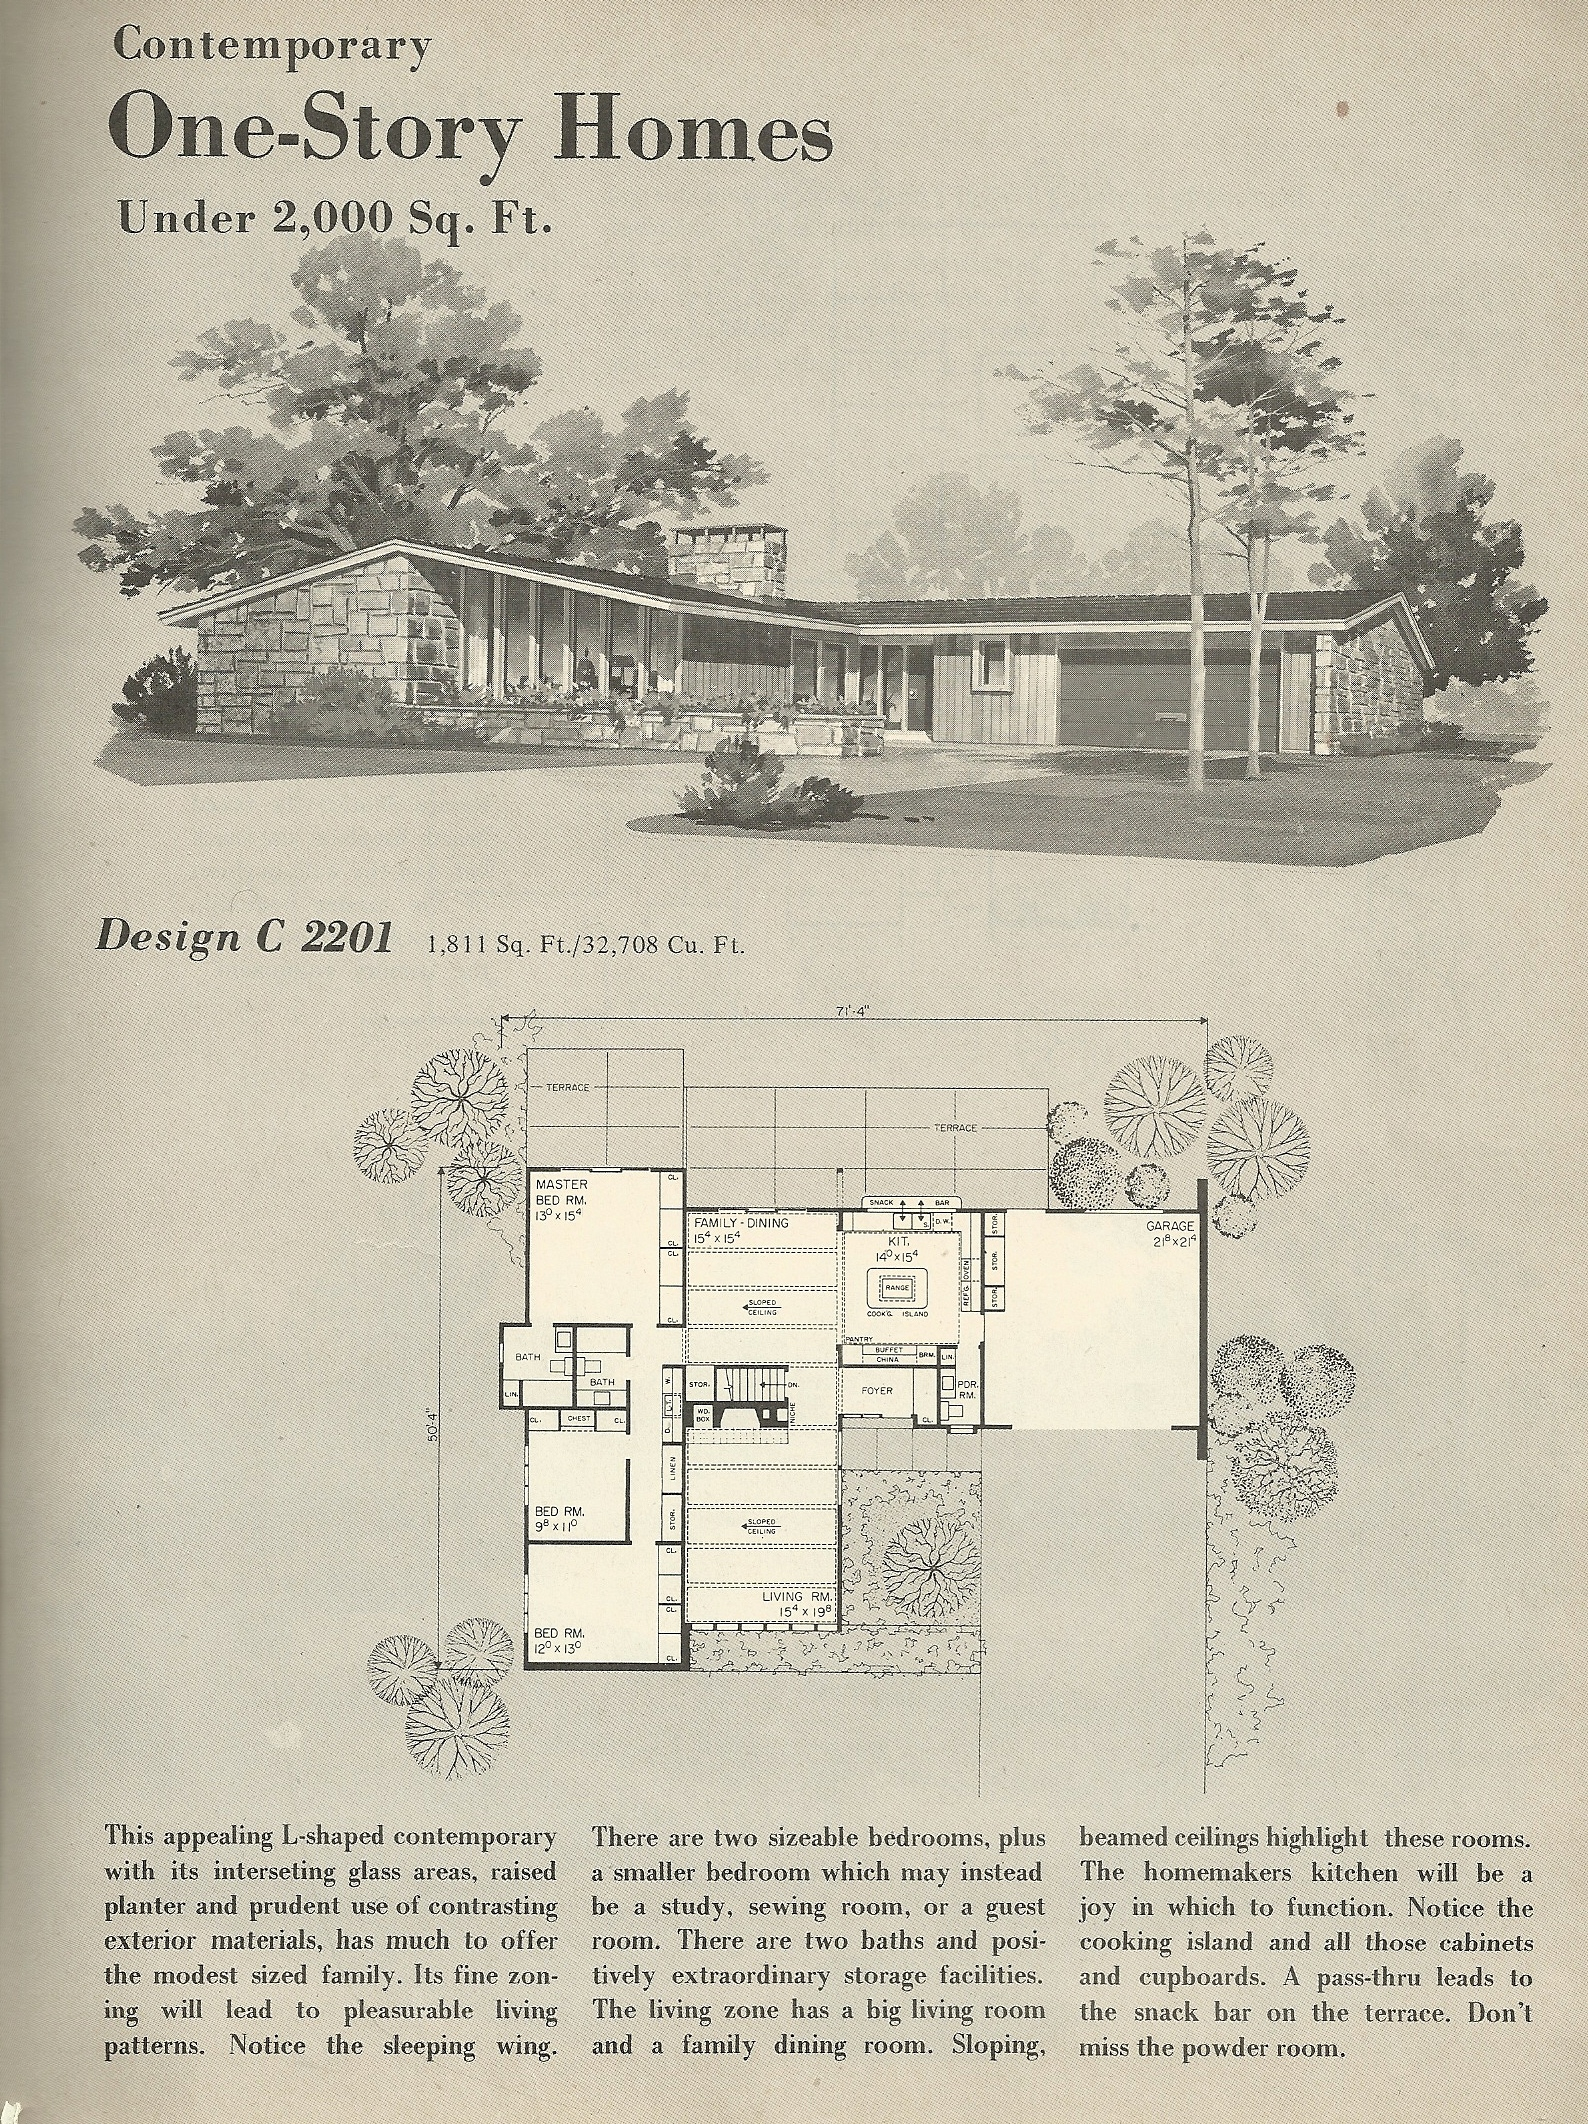 Vintage house plans 2201 antique alter ego for Mid century modern house plan